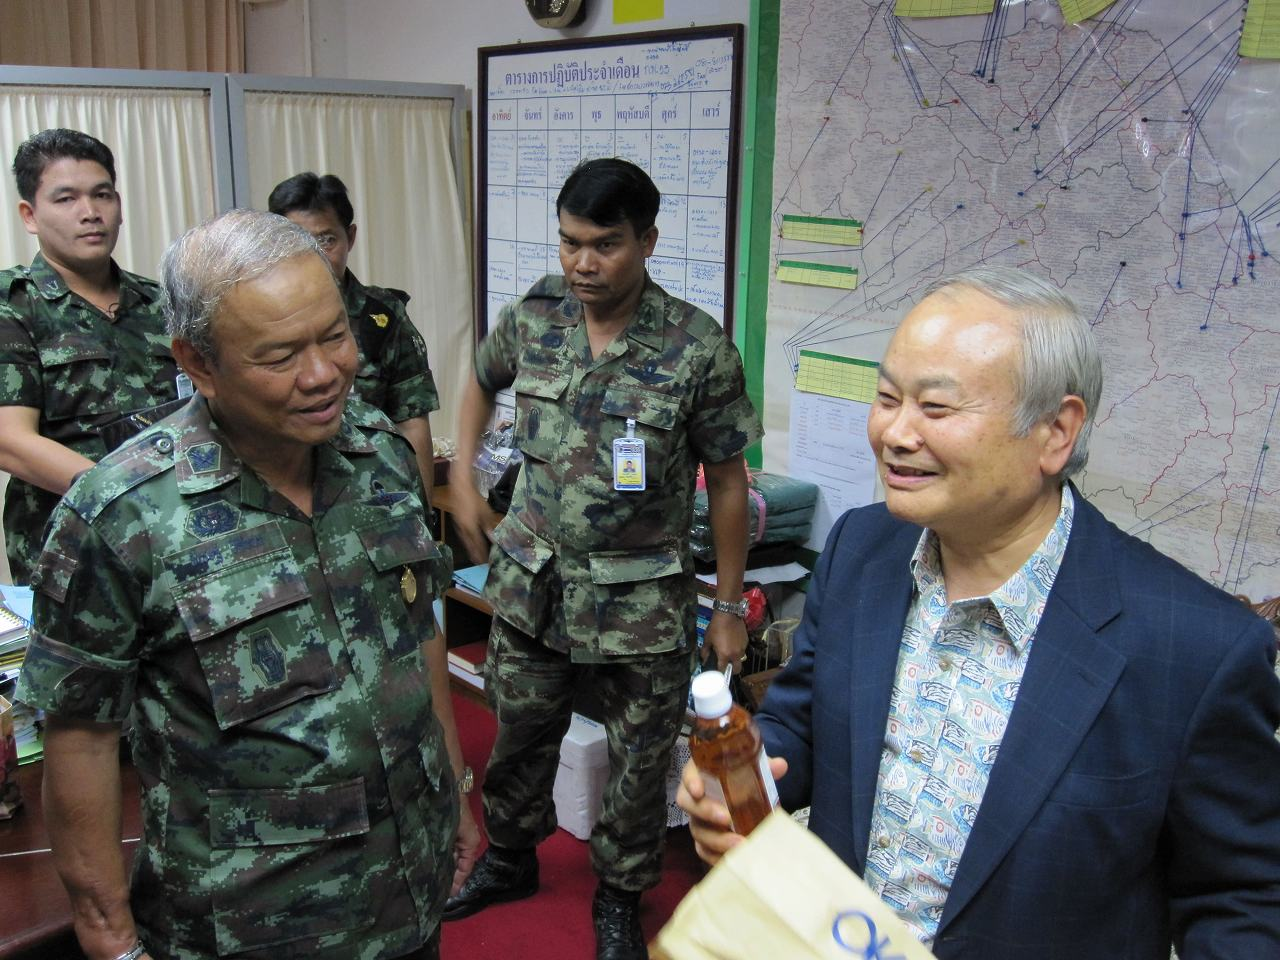 Prof. Higa during his visit to Thailand along with former General Pichate of the Royal Thai Army